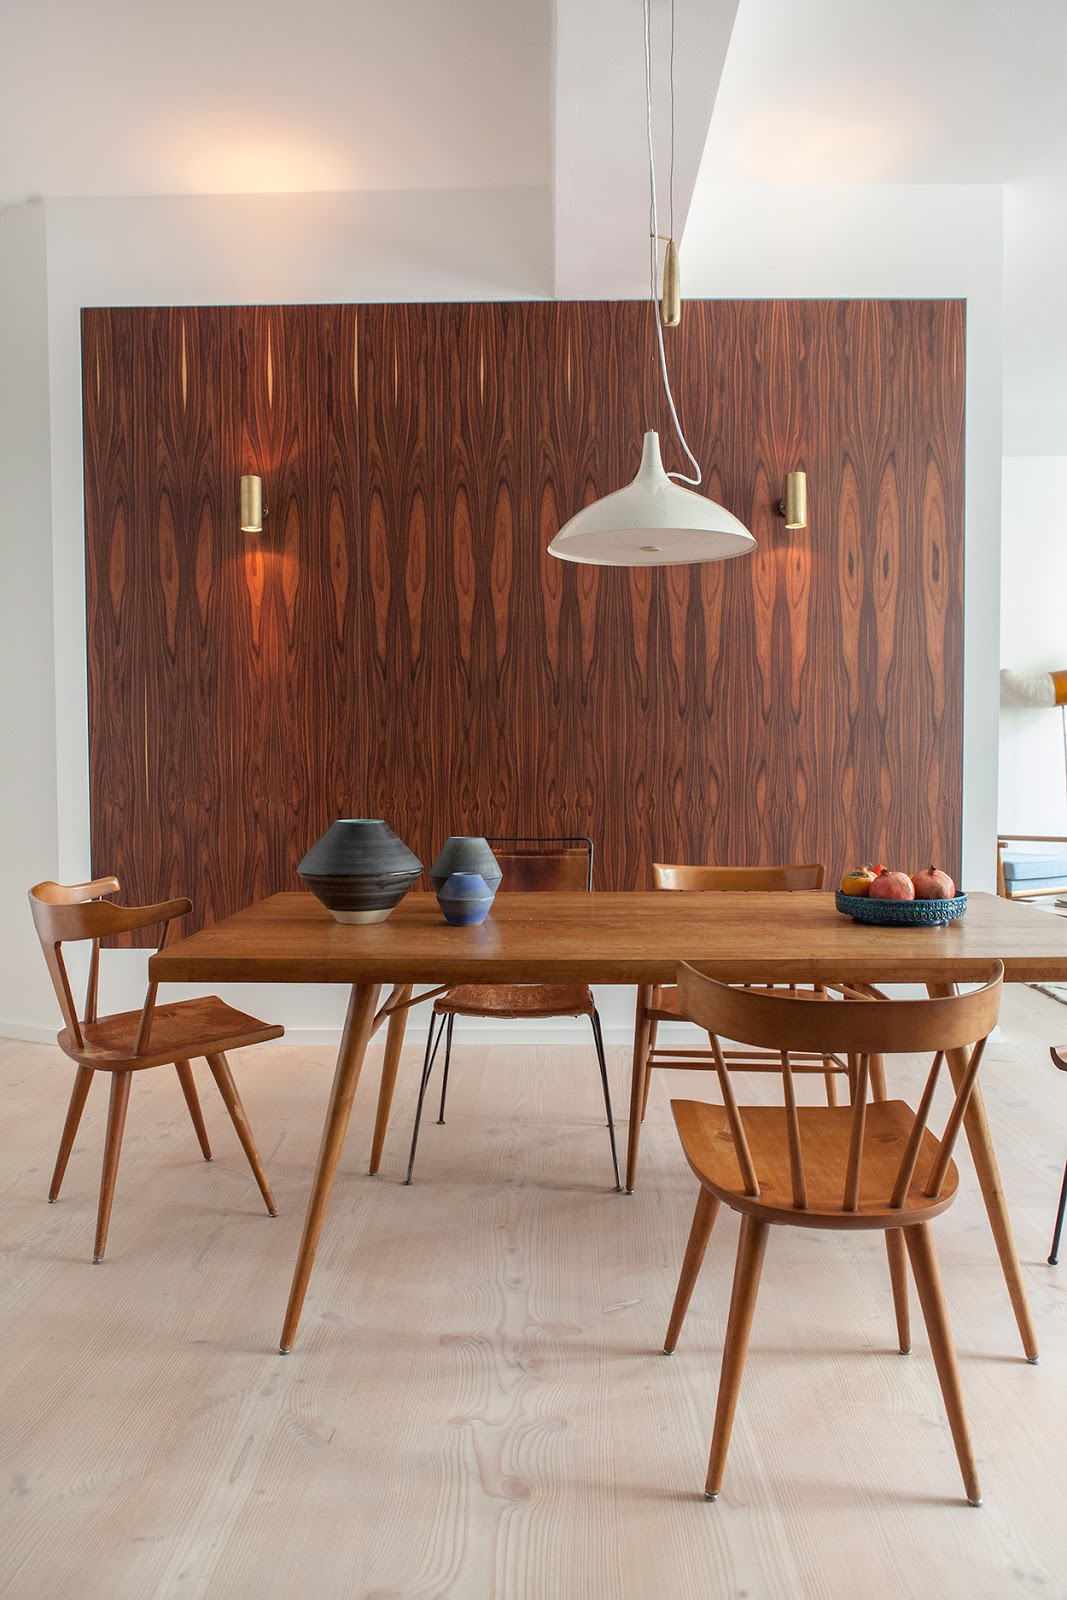 wood paneling in designer loft in berlin, mid century modern furniture,  pottery collection, interior design